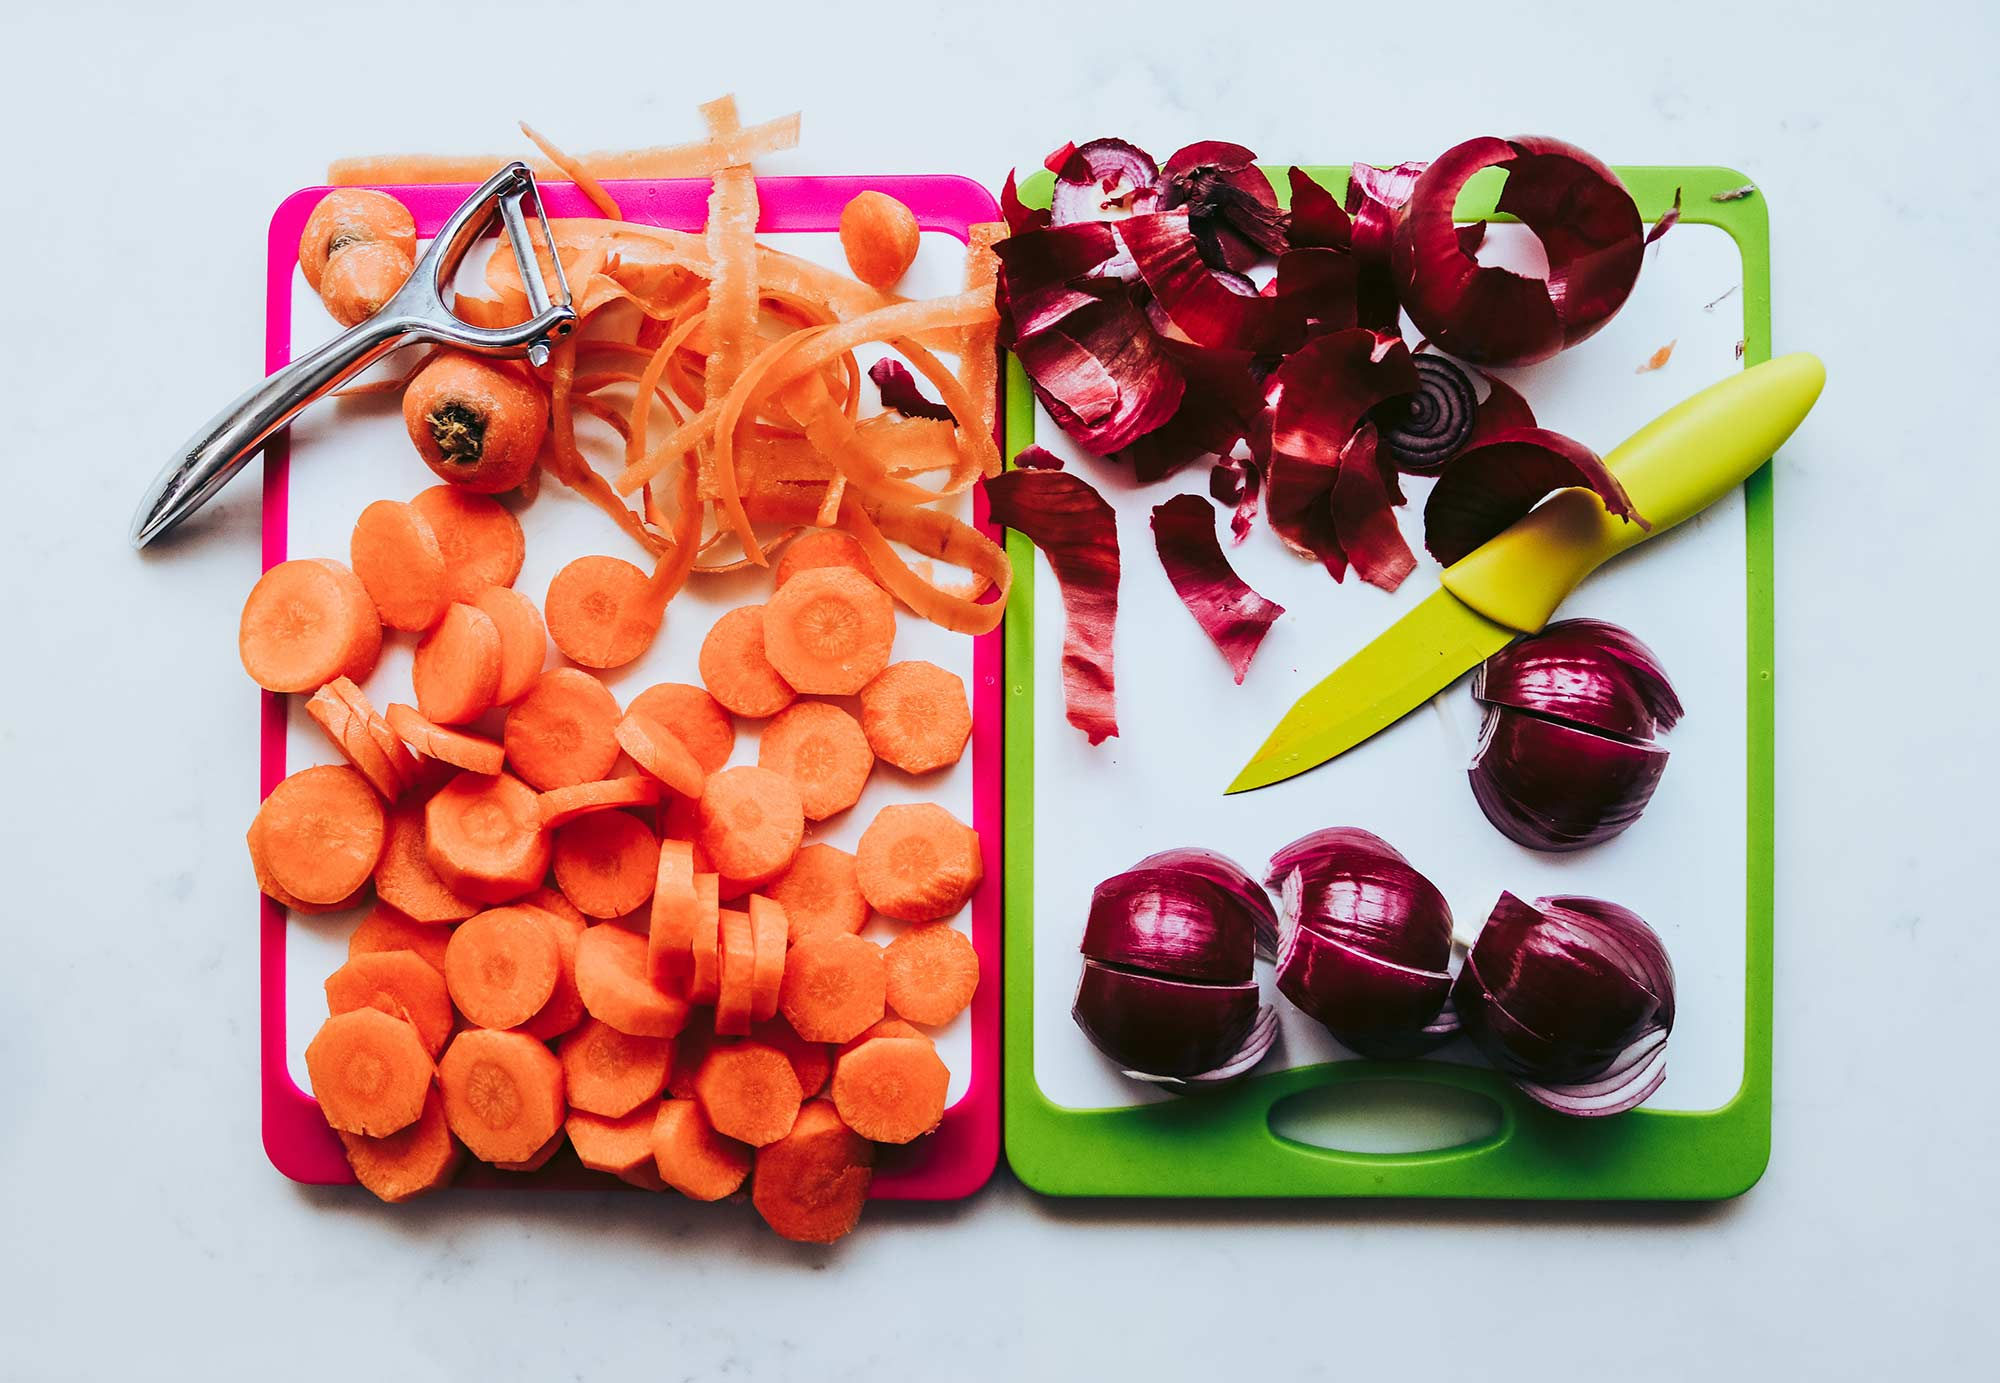 Vegetables on a plastic chopping board